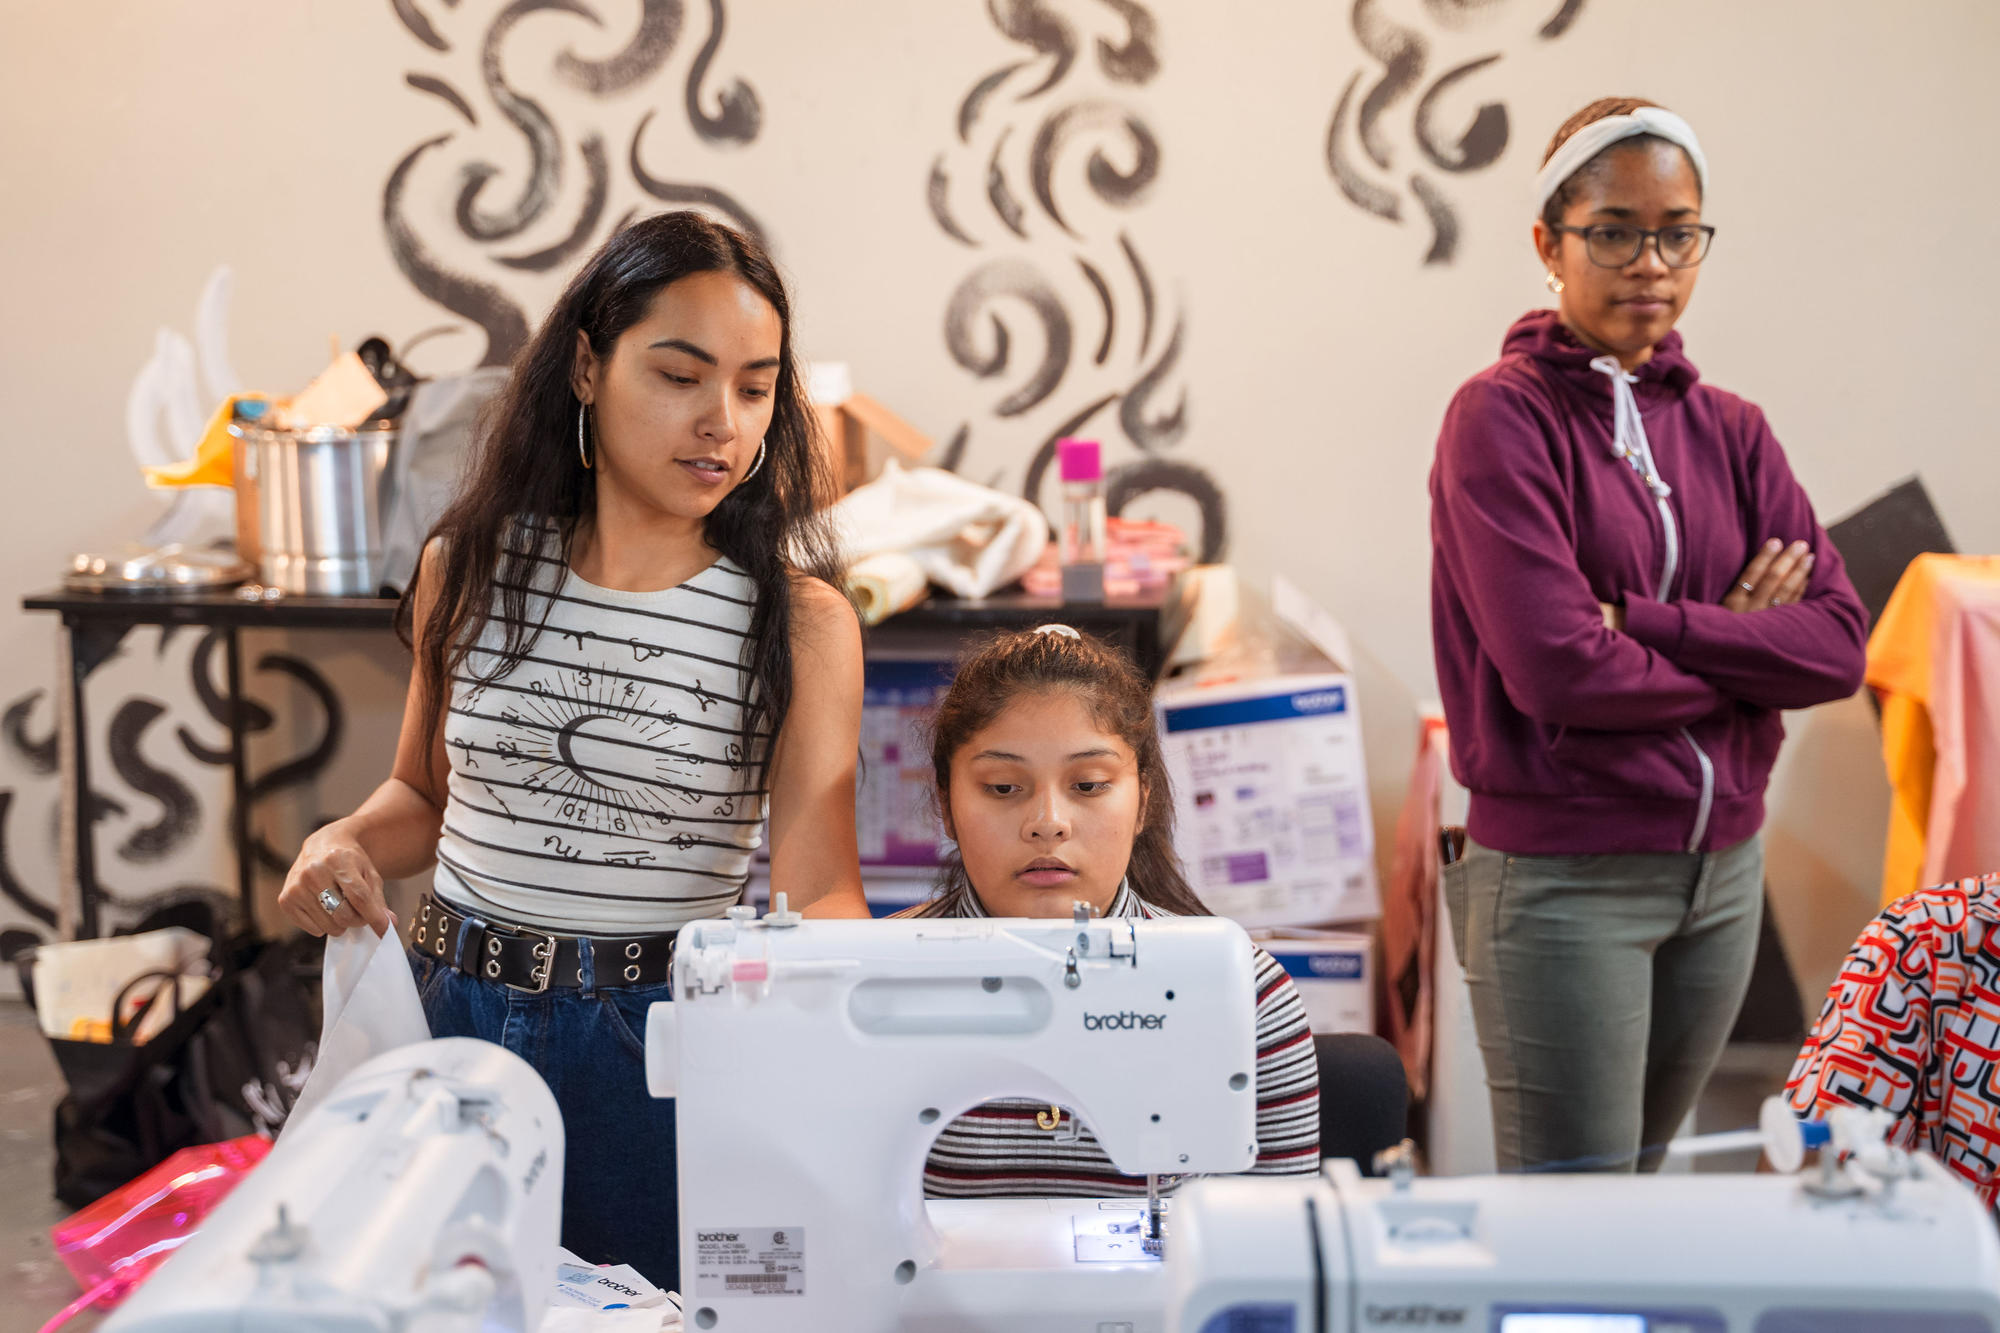 Nathalia JMag teaches Urbano Project students how to use a sewing machine.